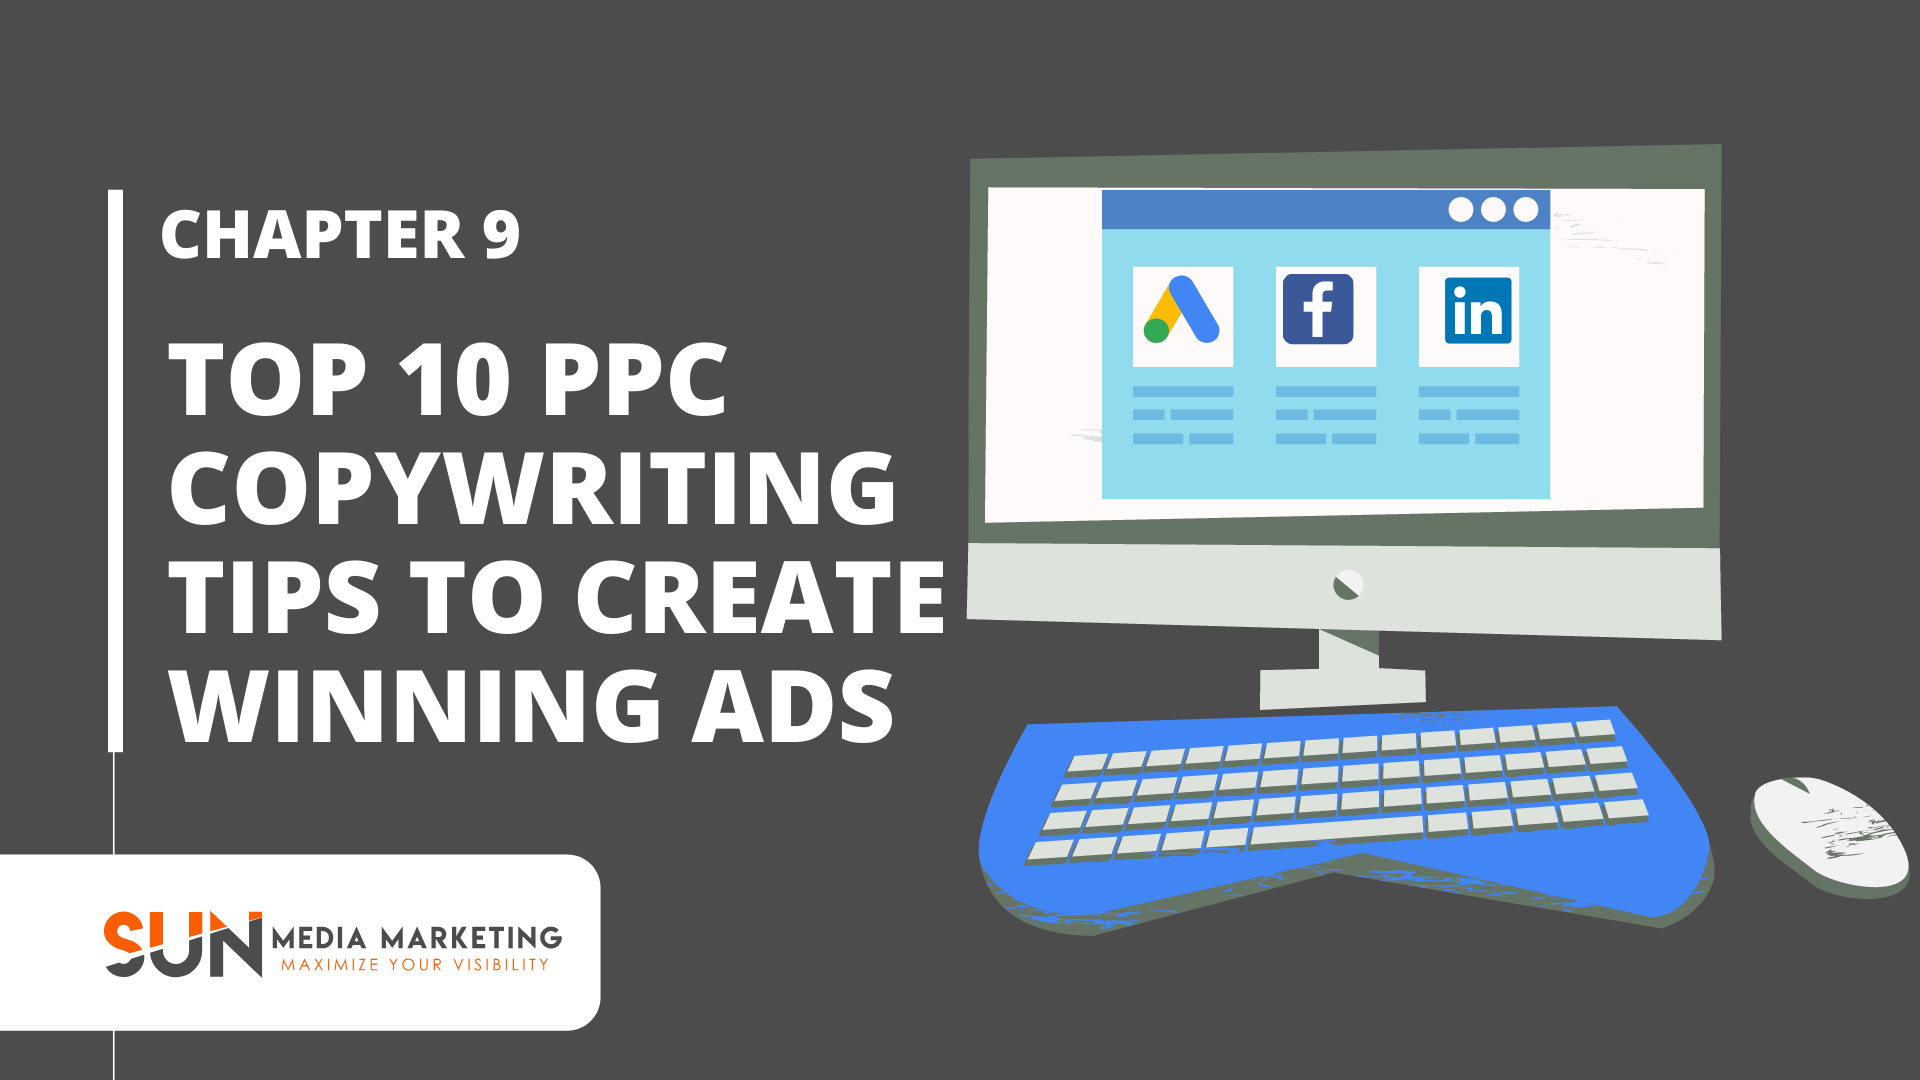 Top 10 PPC Copywriting Tips to Create Winning Ads